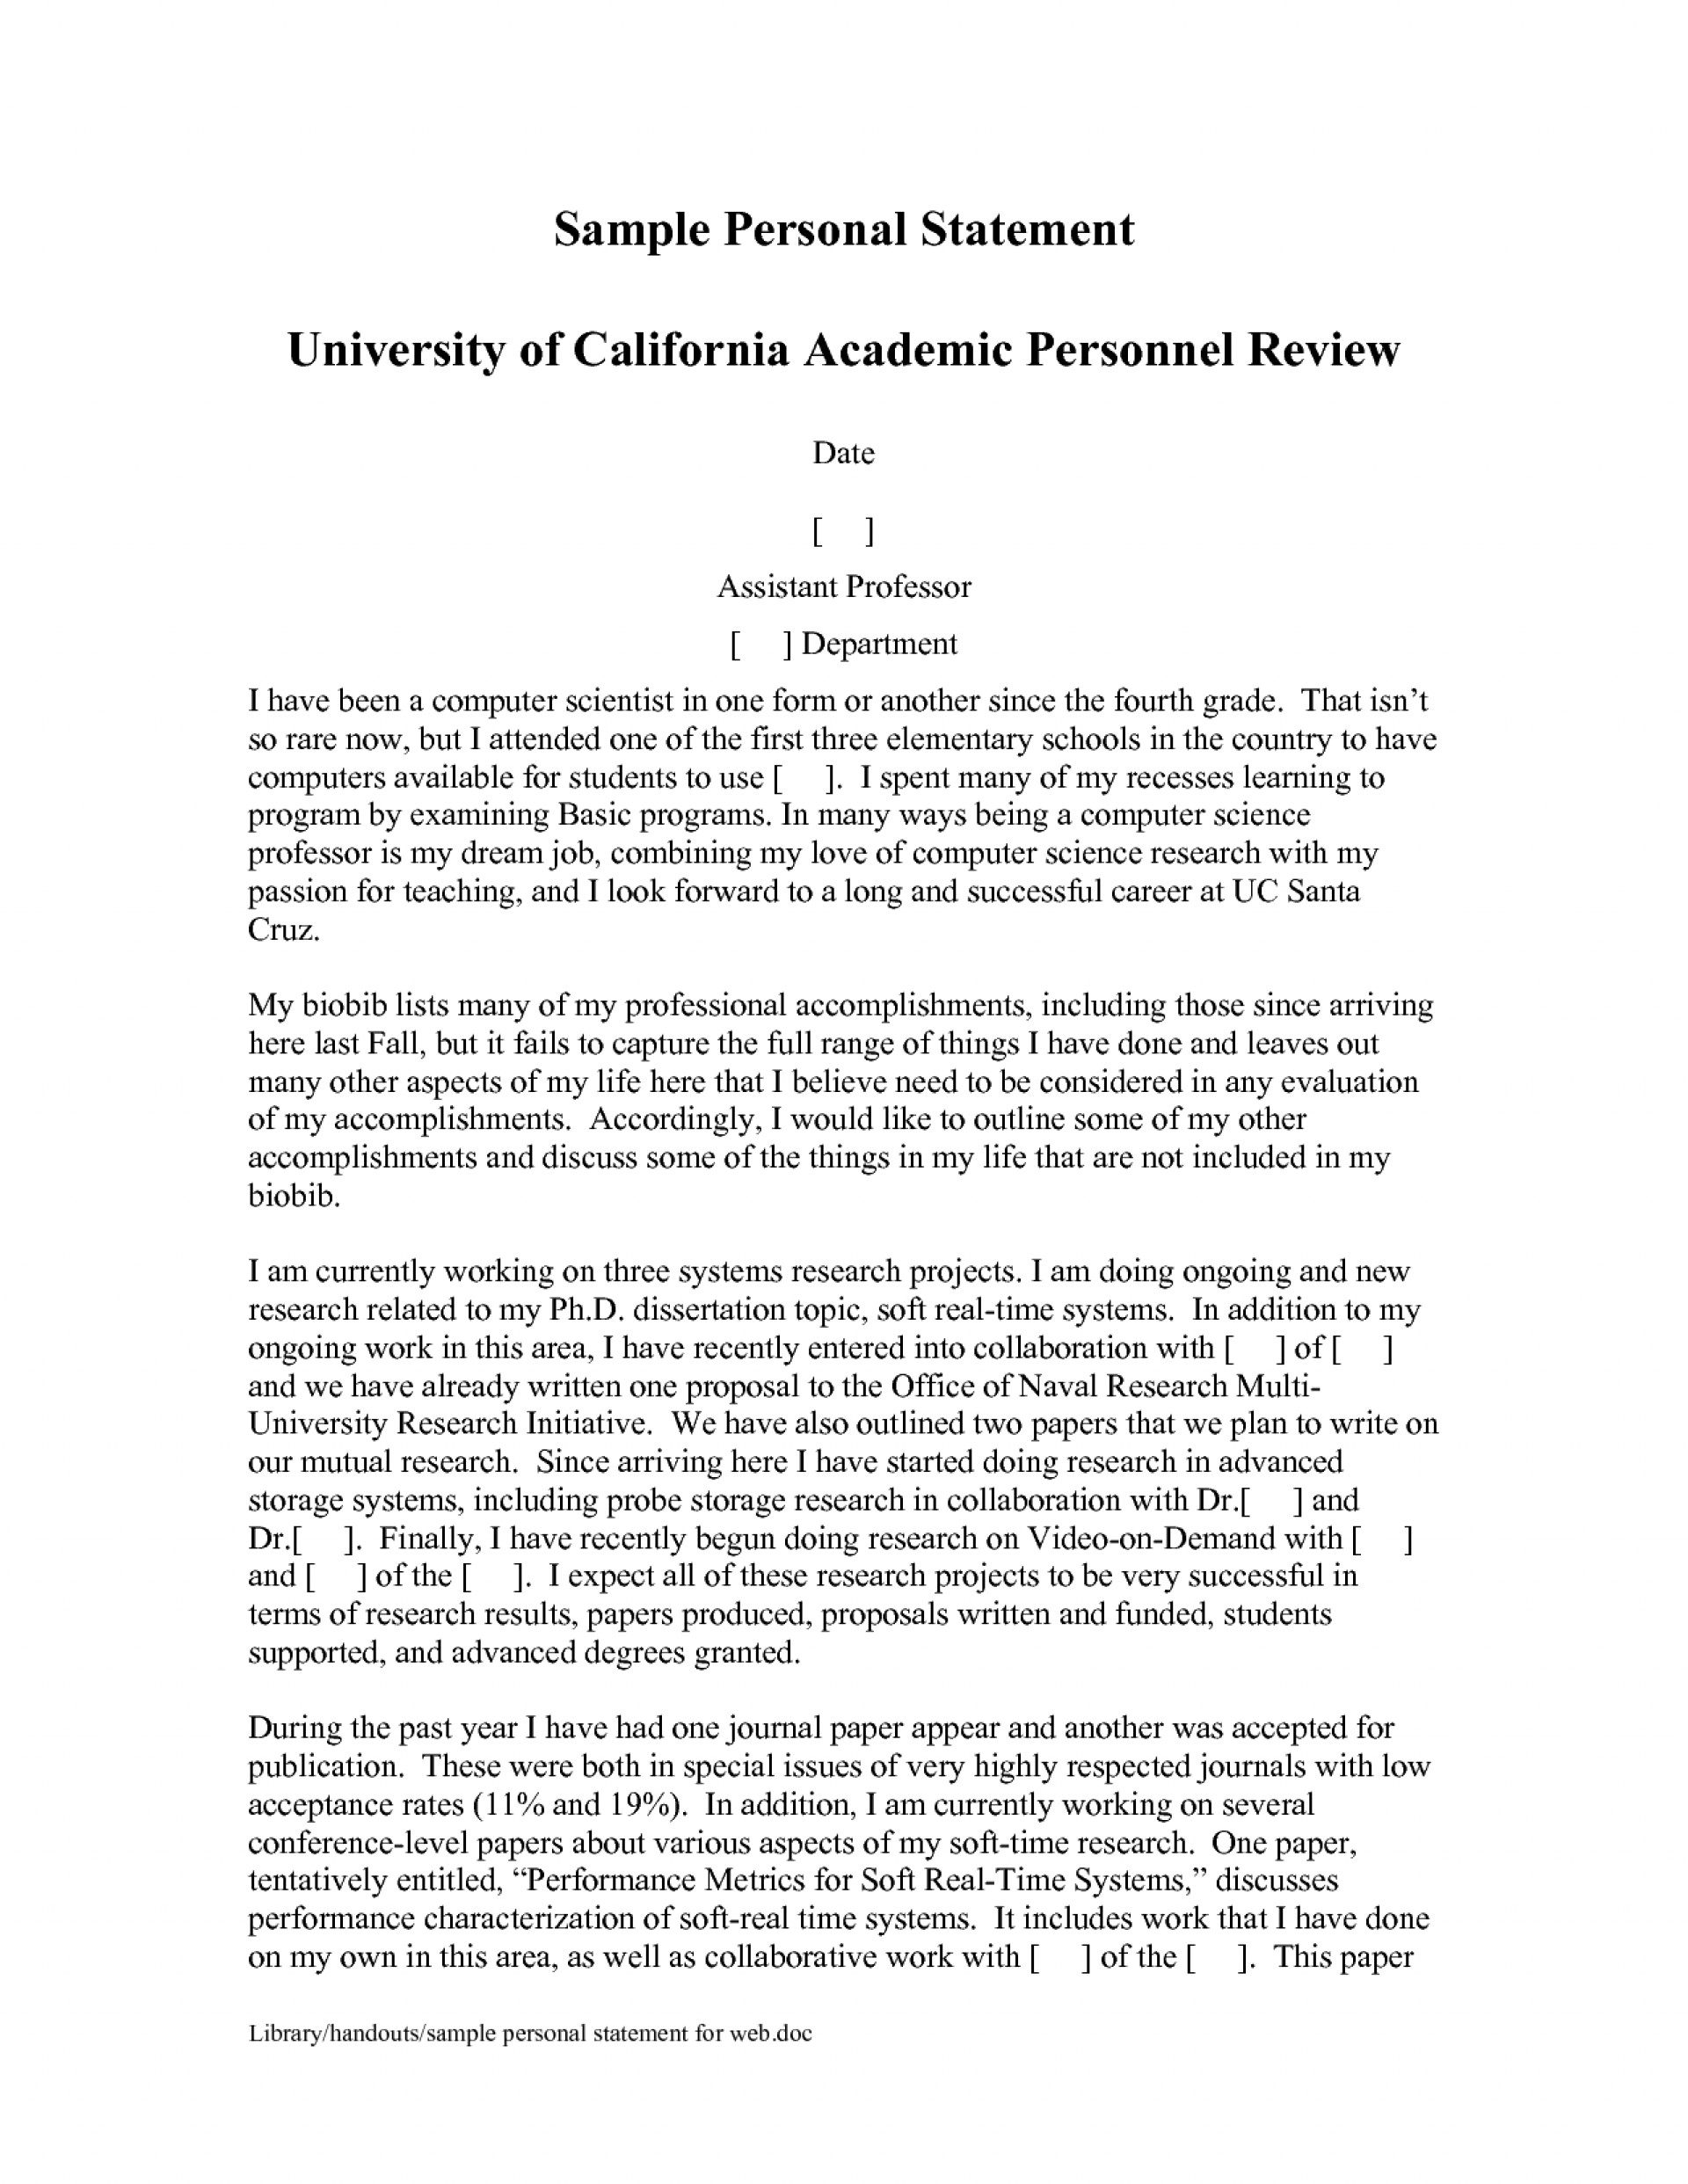 007 Essay Example On Diversity Graduate Personal Statement Template Breathtaking For College Admission Regional In India Indian Culture 1920